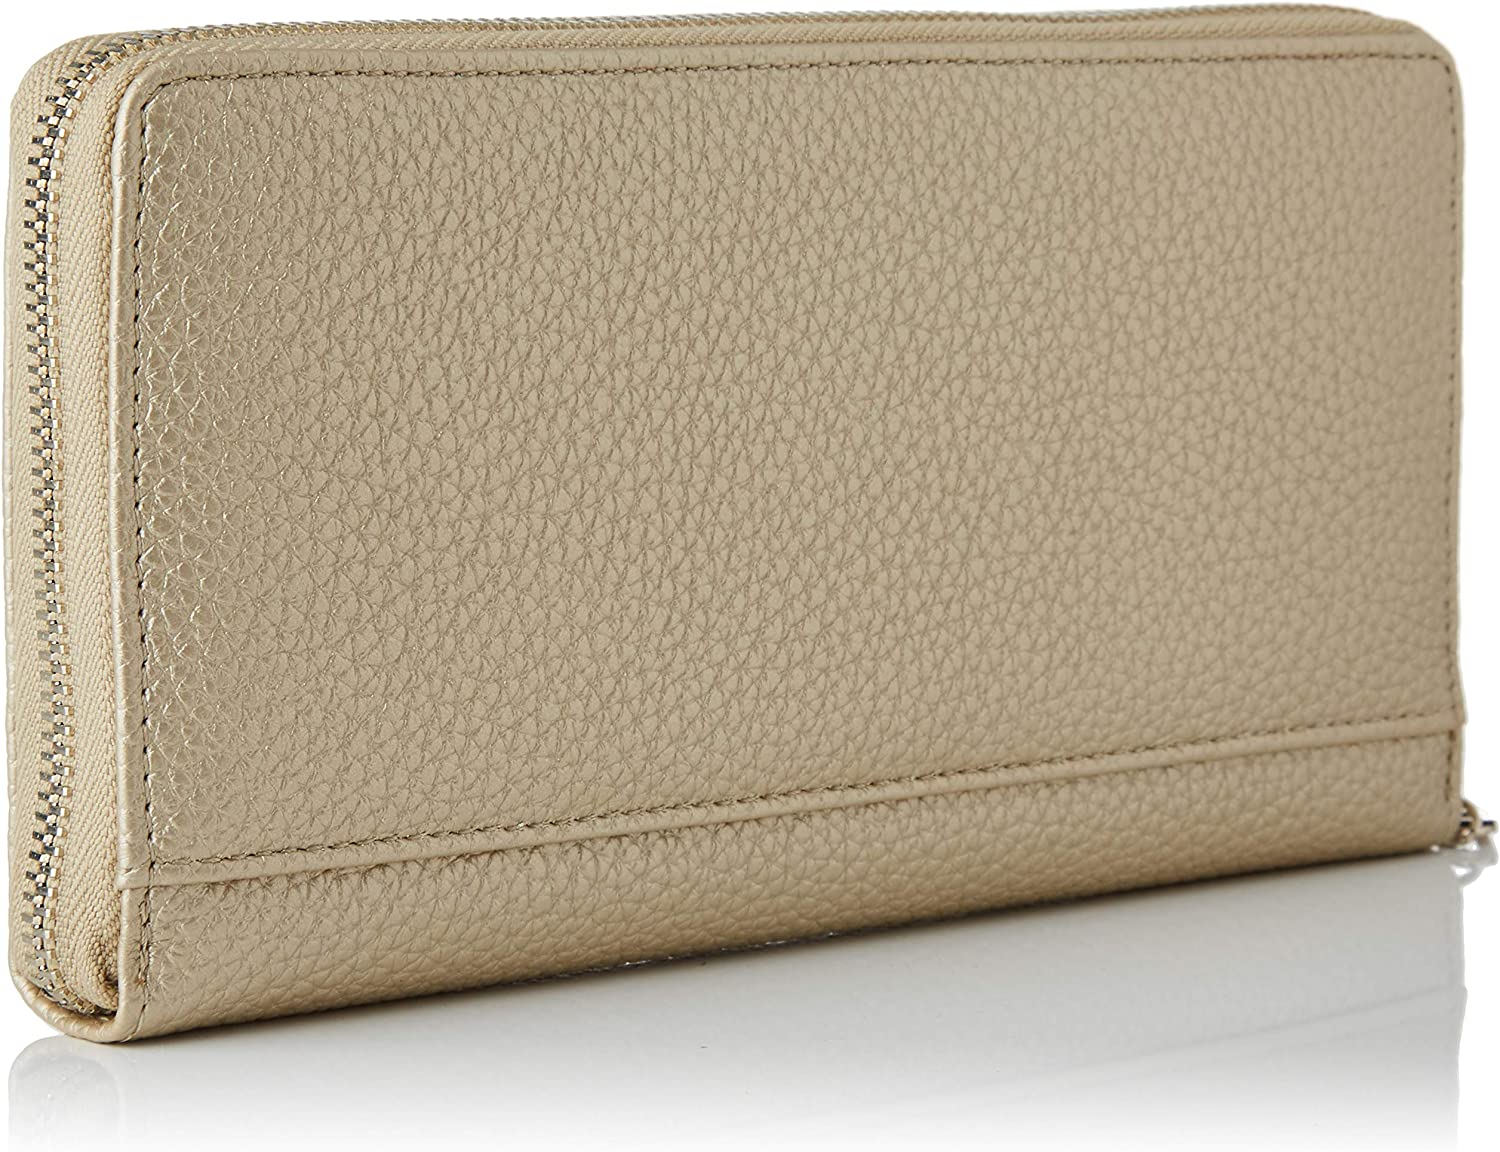 Guess Uptown Chic Slg Cheque Orgnzr Classique